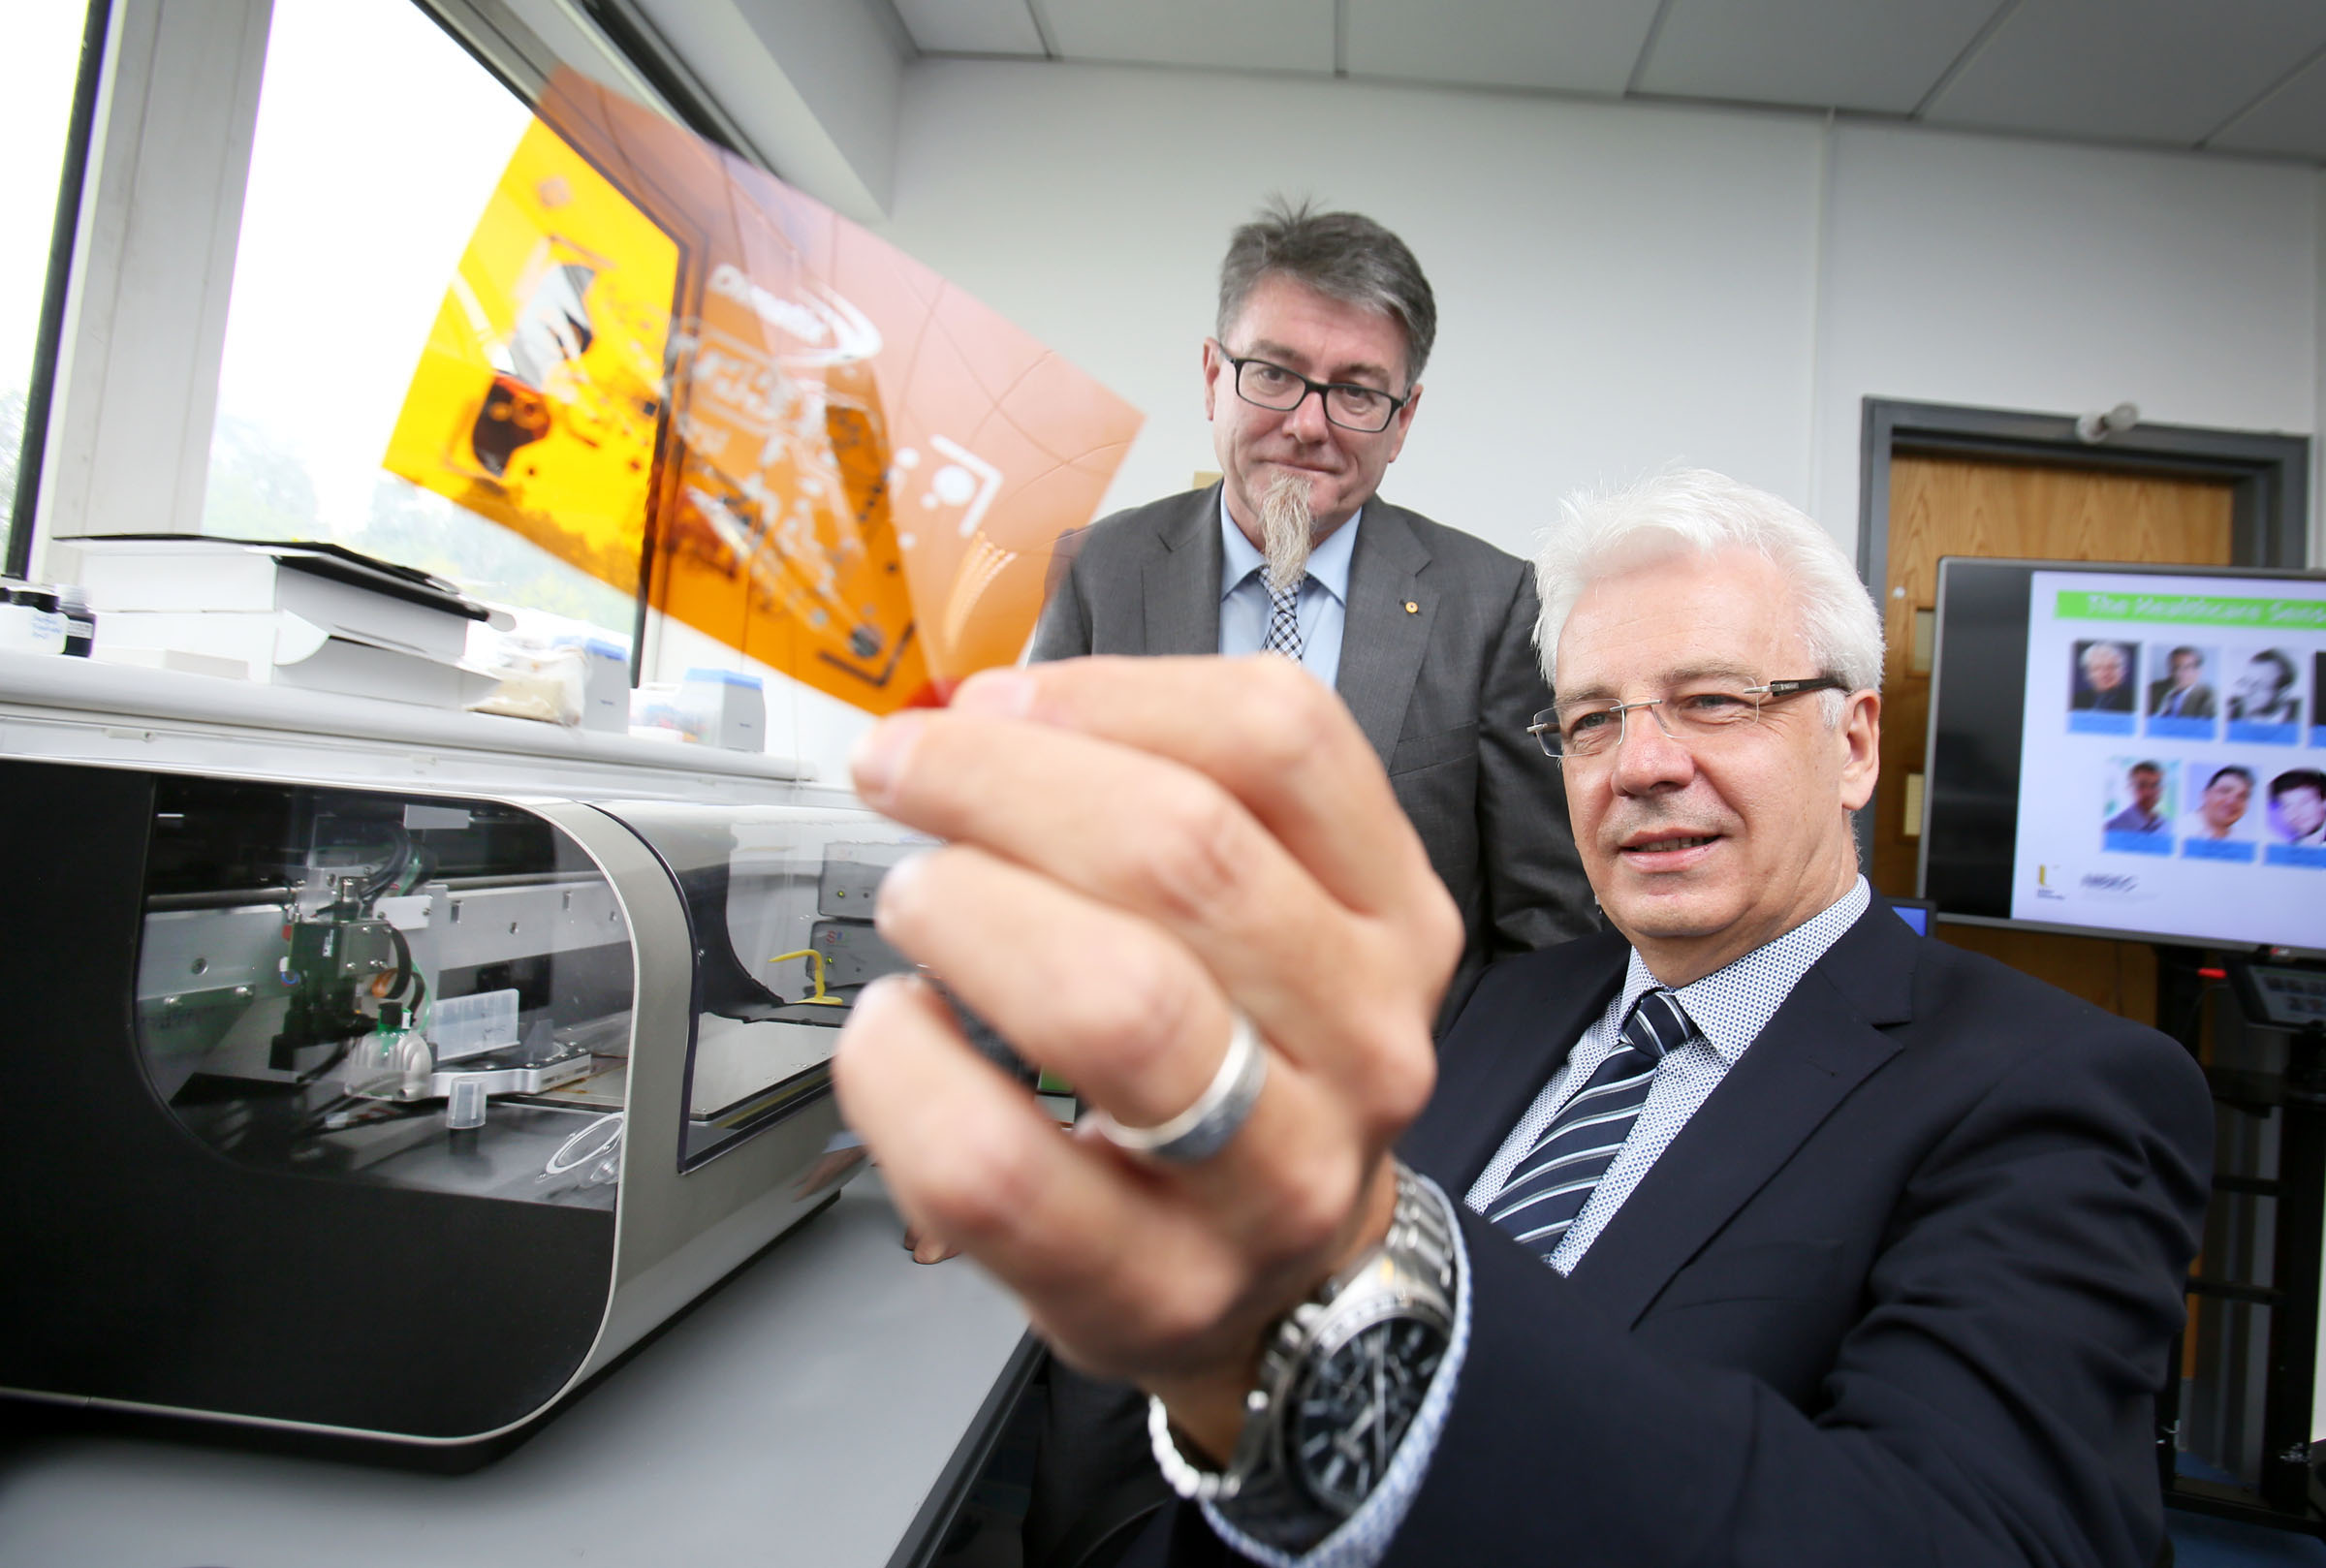 One of the worldÕs leading scientists in the field of electromaterials, Belfast-born Professor Gordon Wallace (right) from the University of Wollongong, Australia, helped launchÊUlster UniversityÕs new £2 million Health Technology Research Hub at the Jordanstown campus today with Professor Jim McLaughlin, Ulster University. ÊWorking with medical personnel and industry, the hubÊwill make a global impact on healthcare costs and improve patient treatment for a range of conditions by ensuring that new ideas and technologies can be rapidly tested and developed for use by clinicians. ÊPic By Paul Moane / Aurora